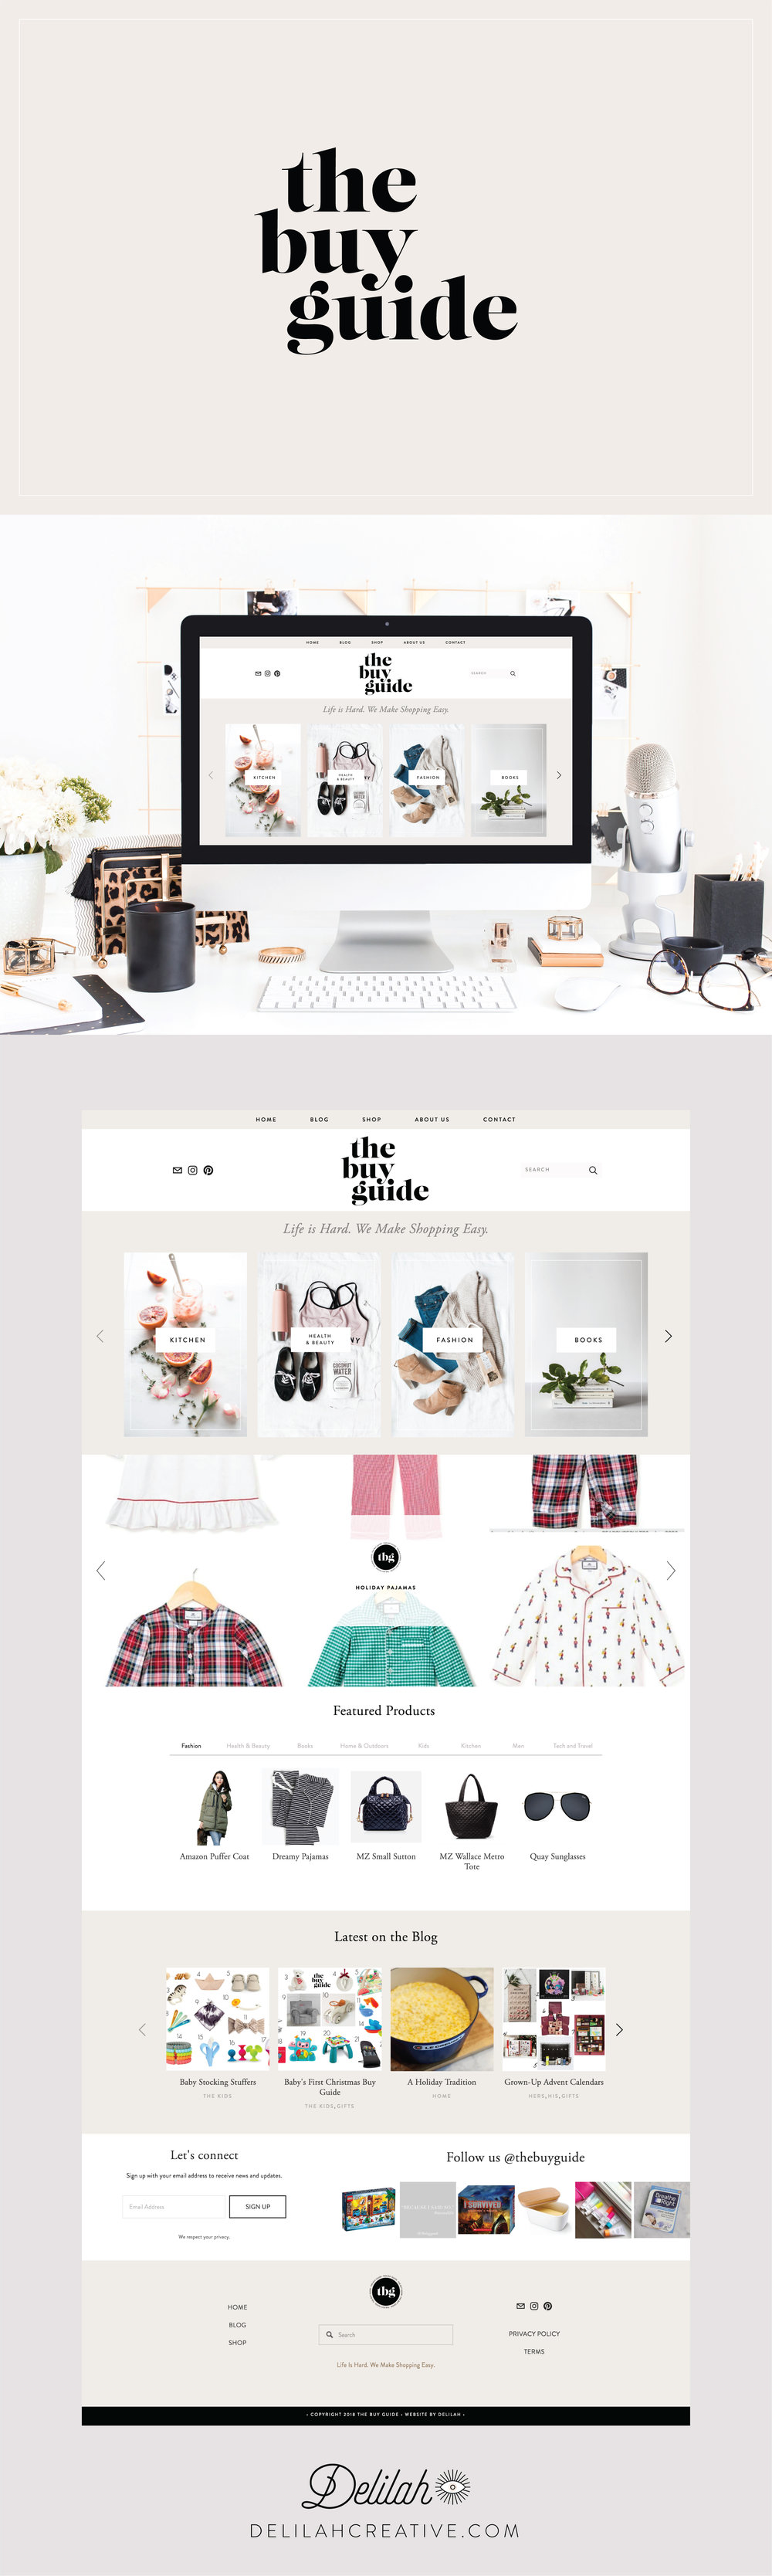 90d9e72c3d8e Delilah Creative - Squarespace and Shopify Experts and Branding ...